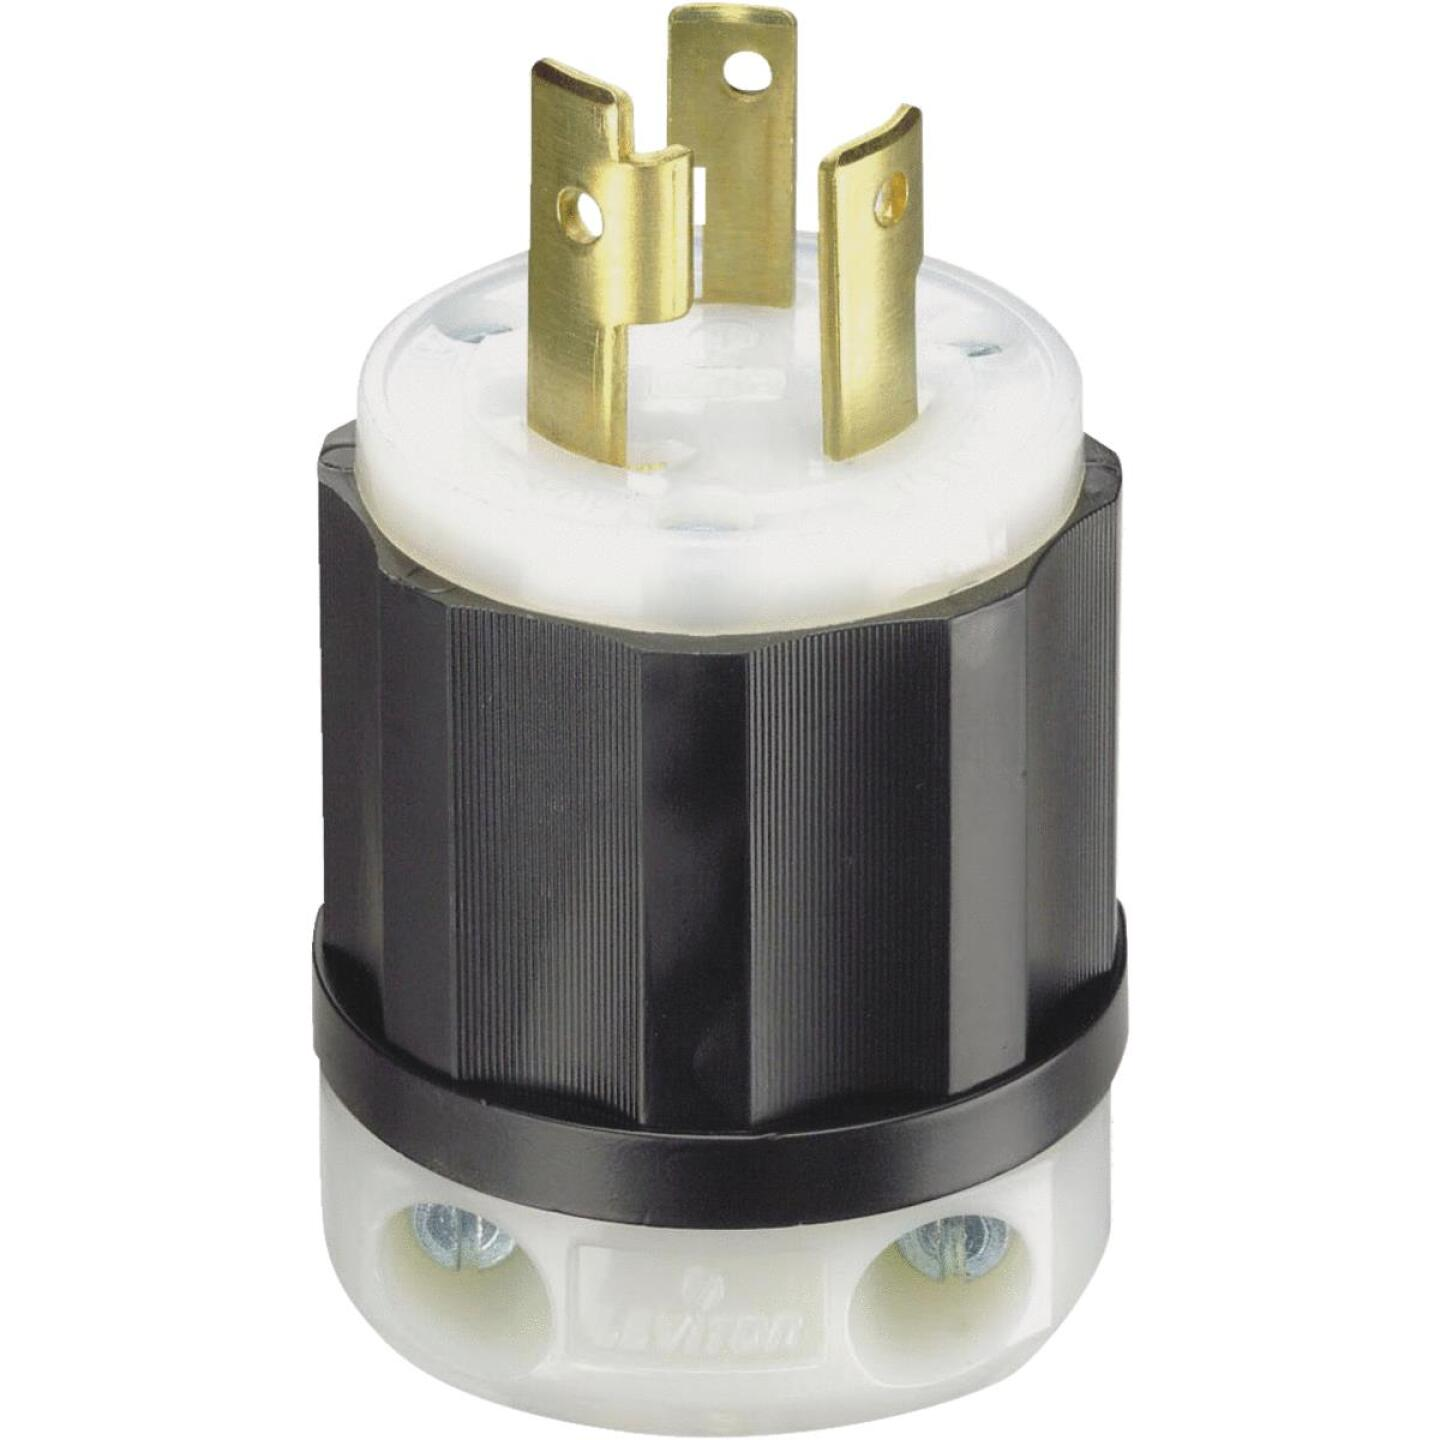 Leviton 30A 125V 3-Wire 2-Pole Industrial Grade Locking Cord Plug Image 2